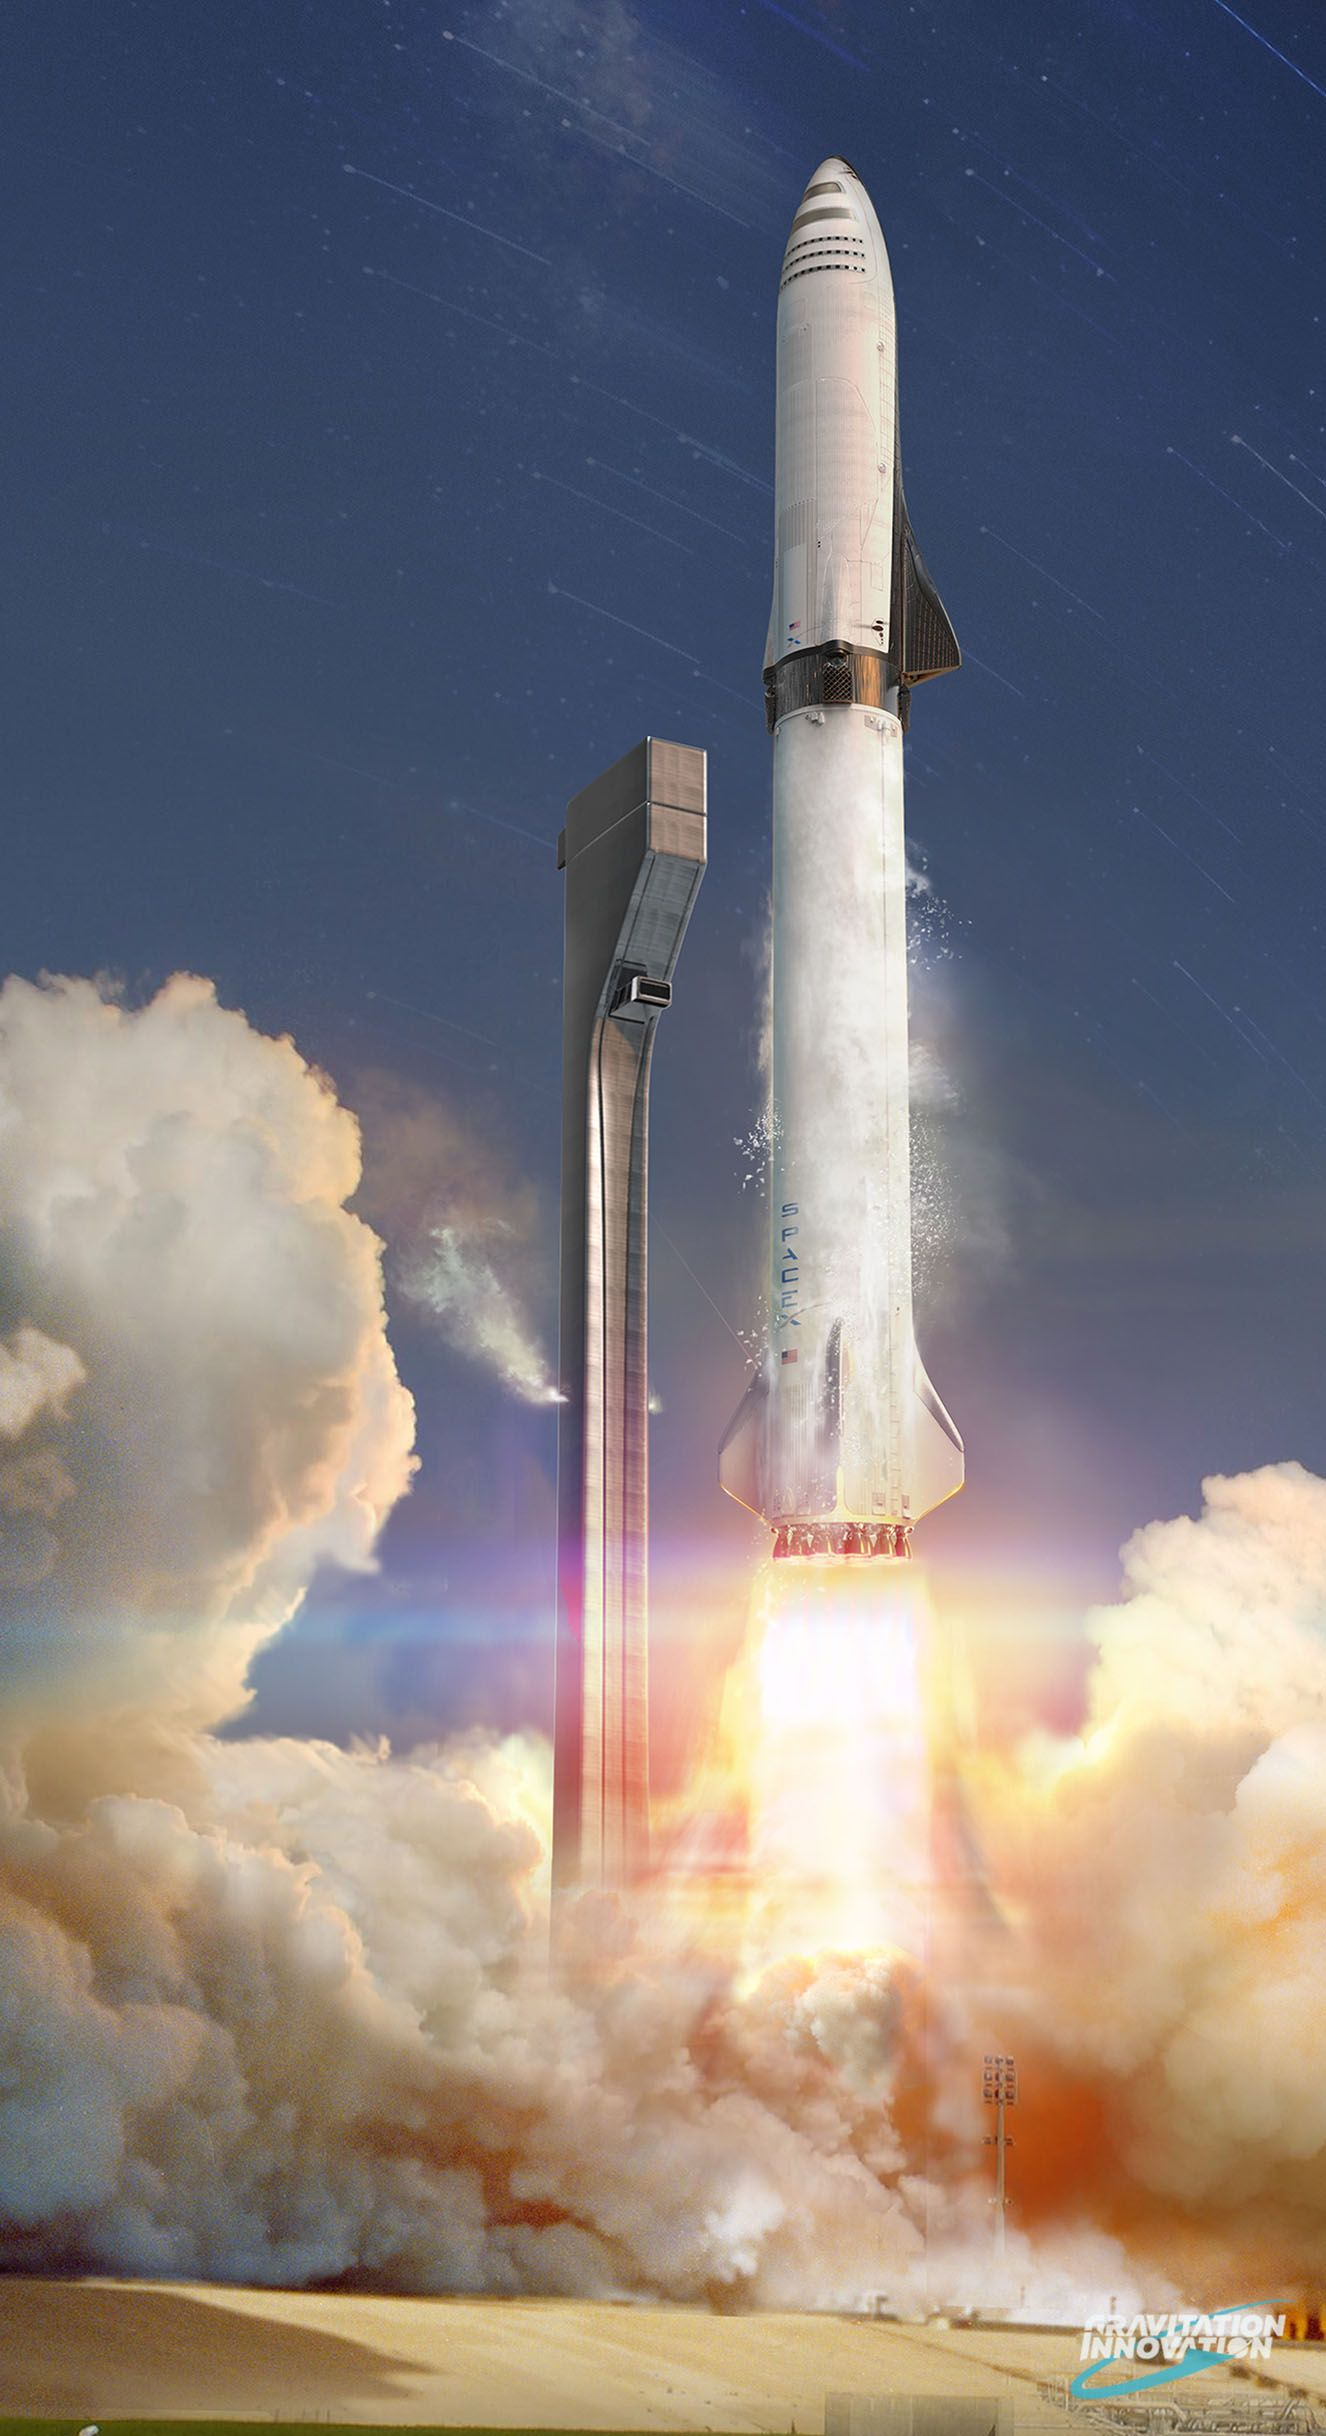 Bfr Launch Space Exploration Space Exploration Technologies Spacex Starship